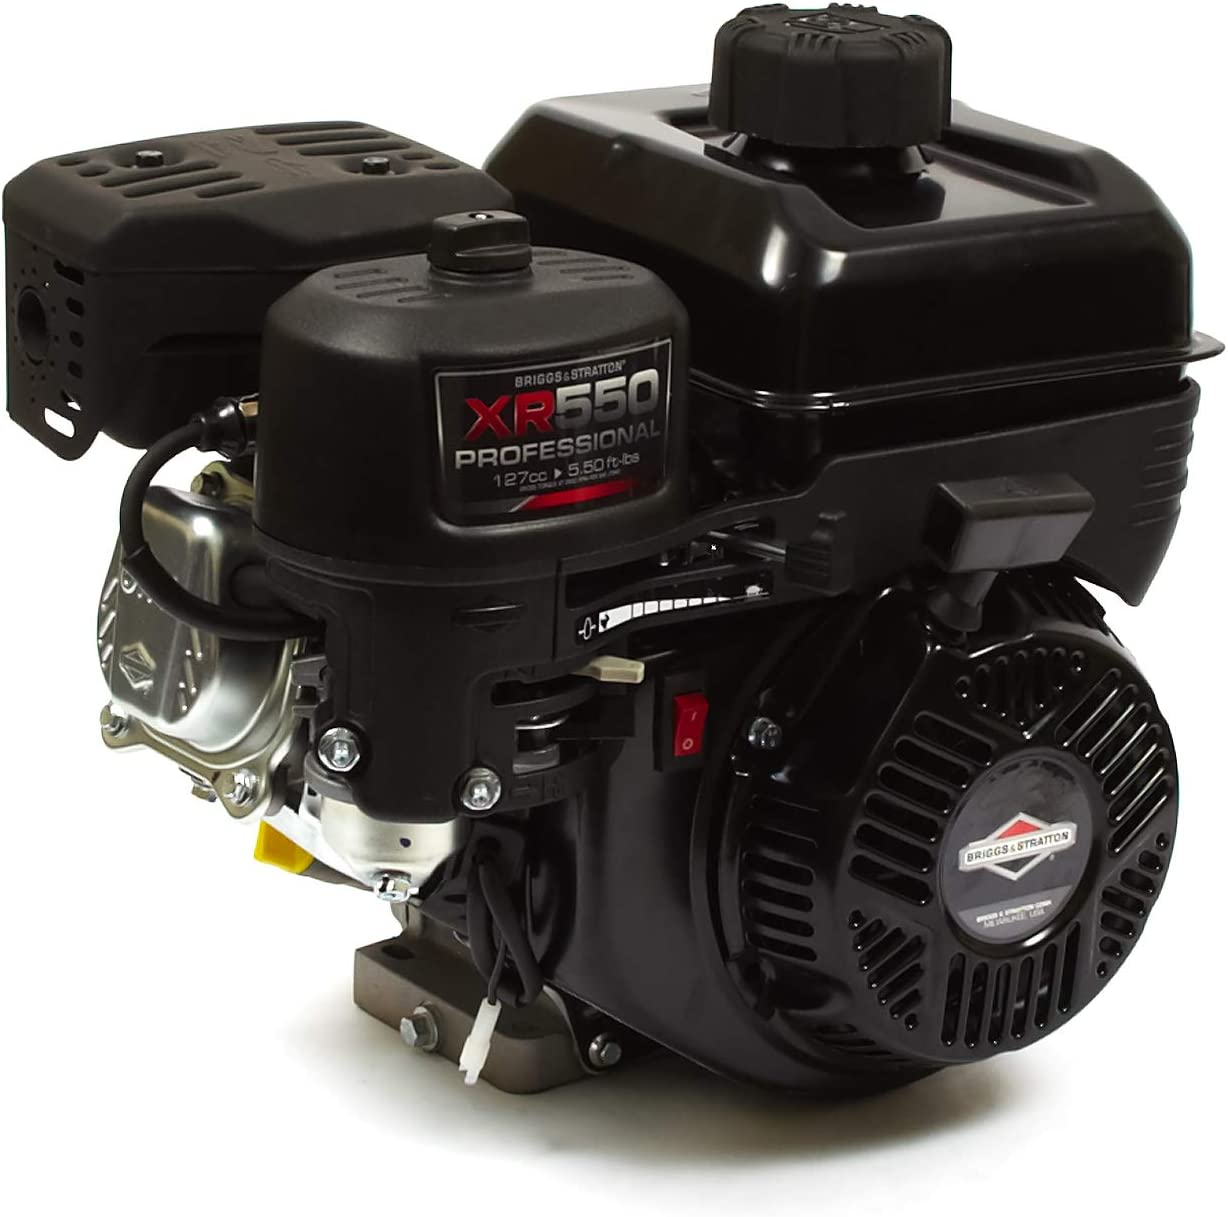 Briggs and Stratton 83132-1040-F1 550 Series 127cc Engine